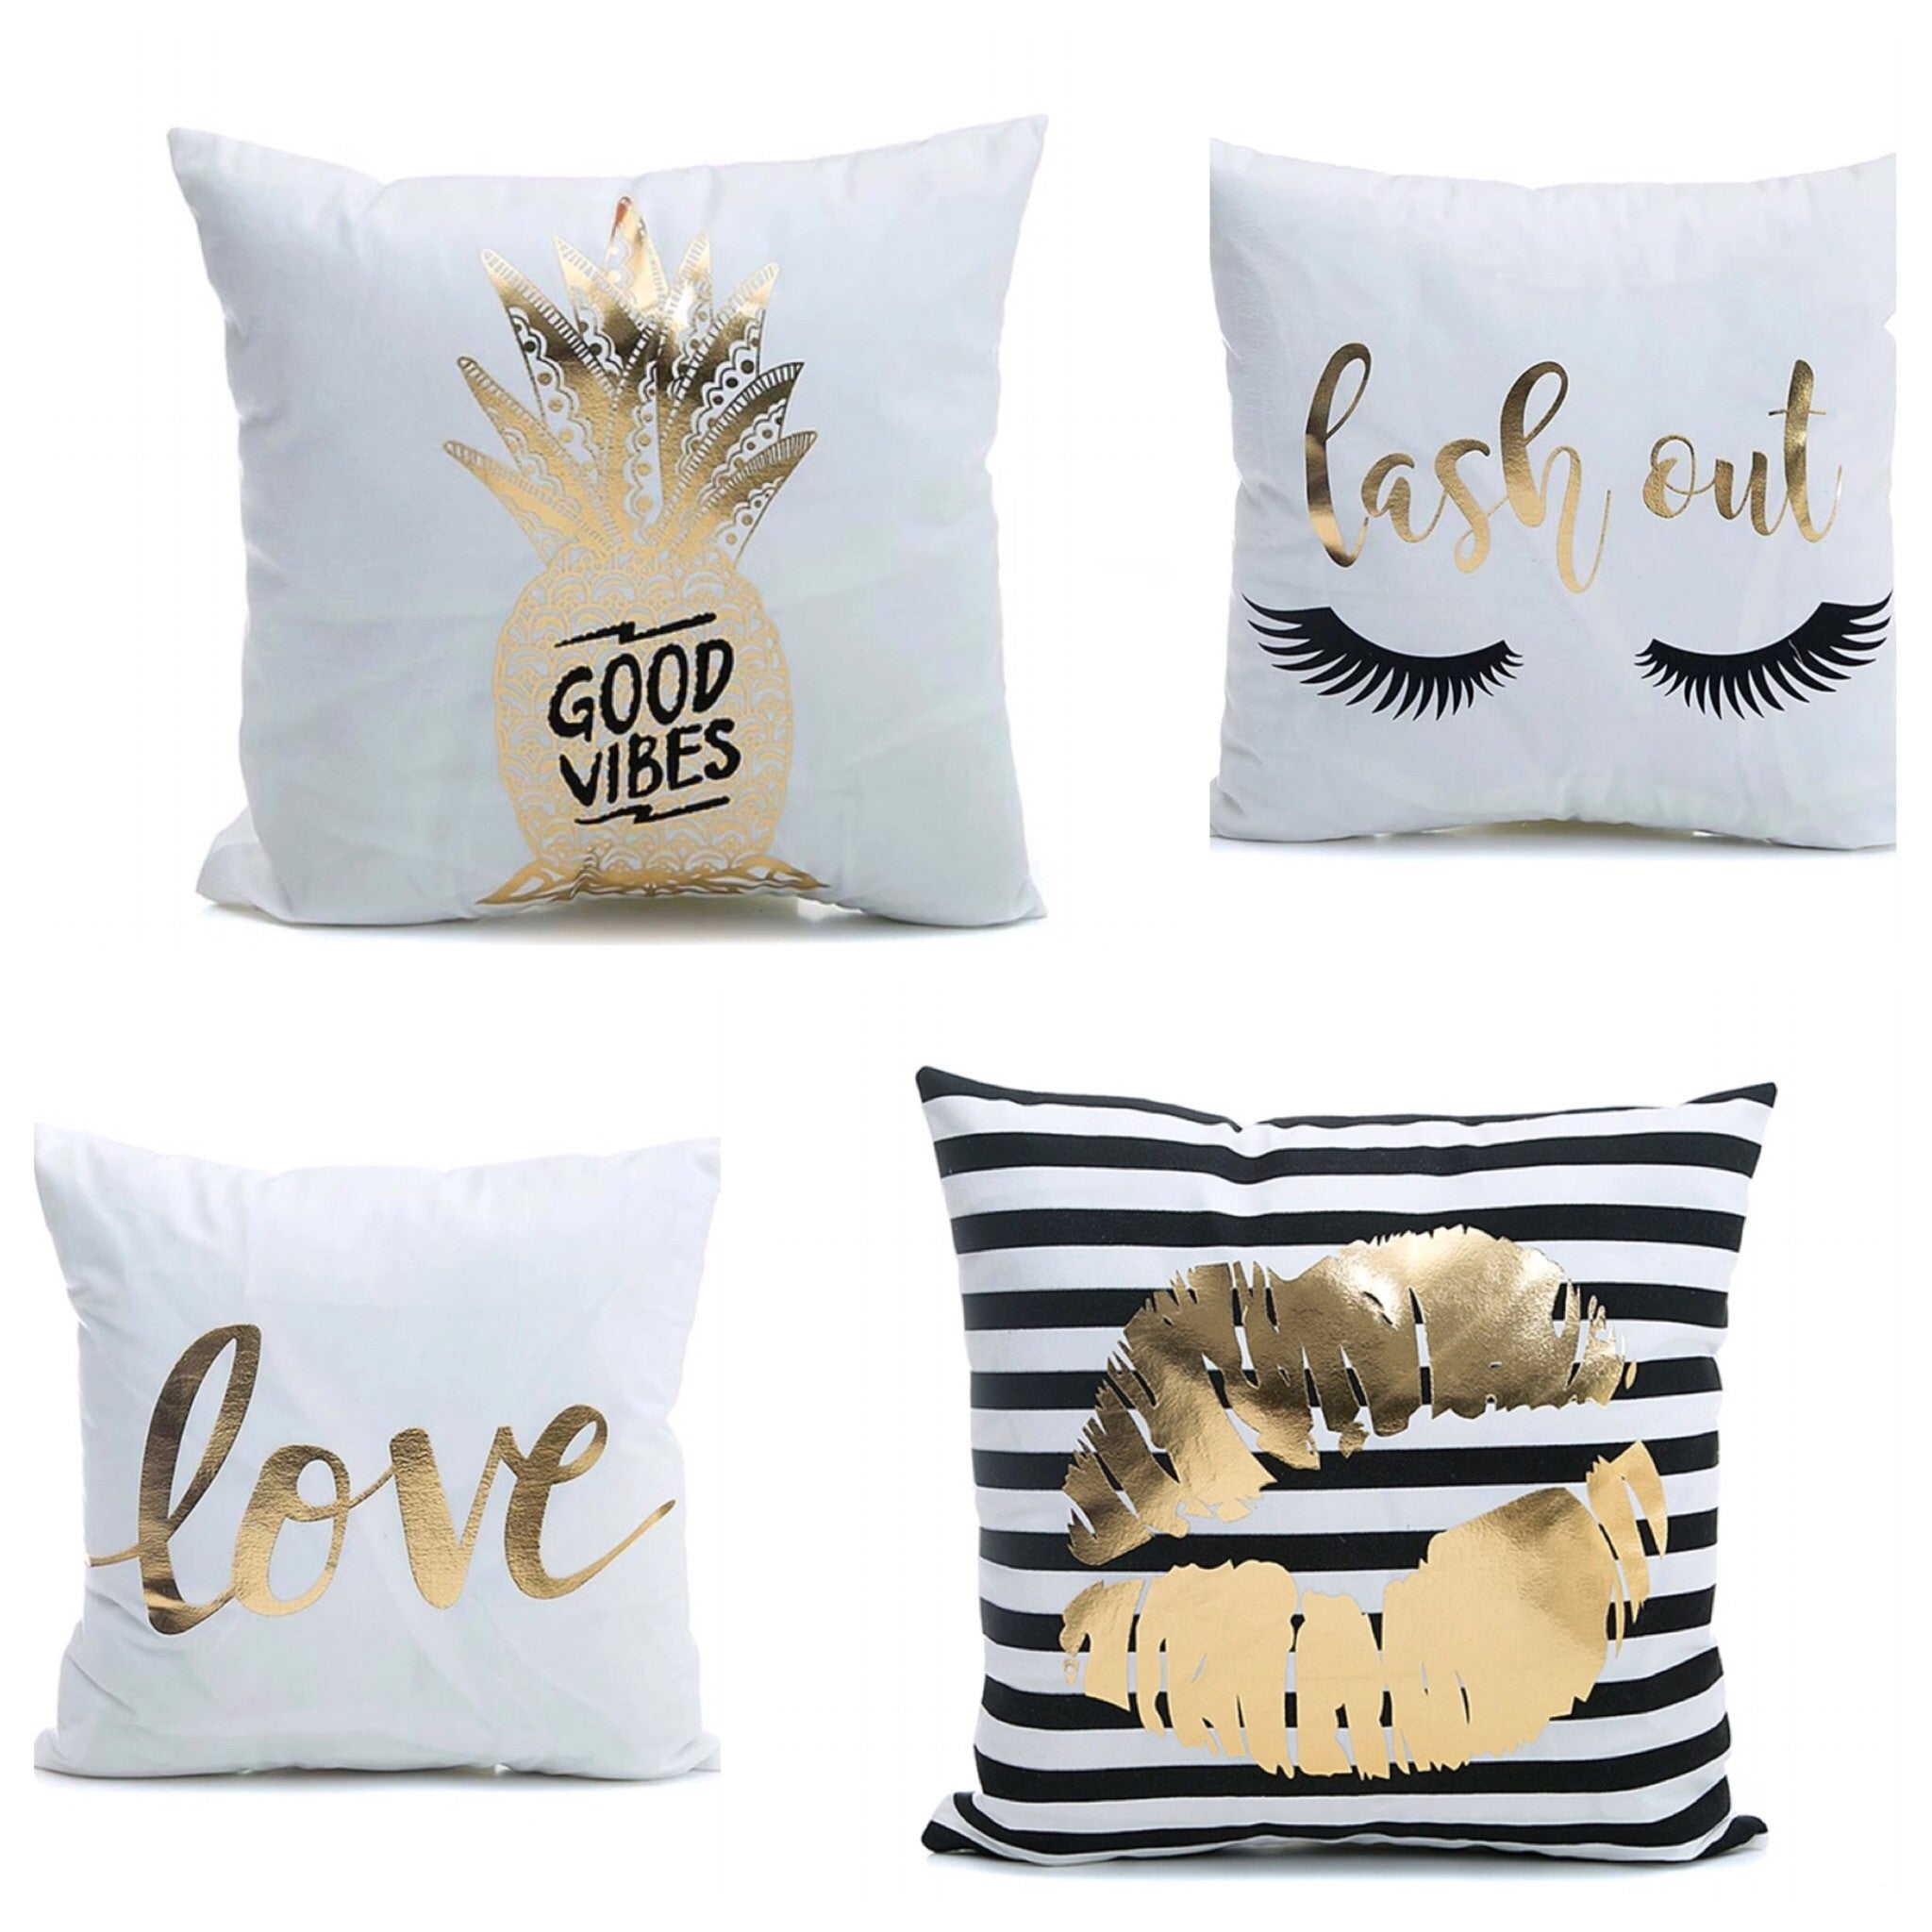 Lash girl pillow case with gold foil